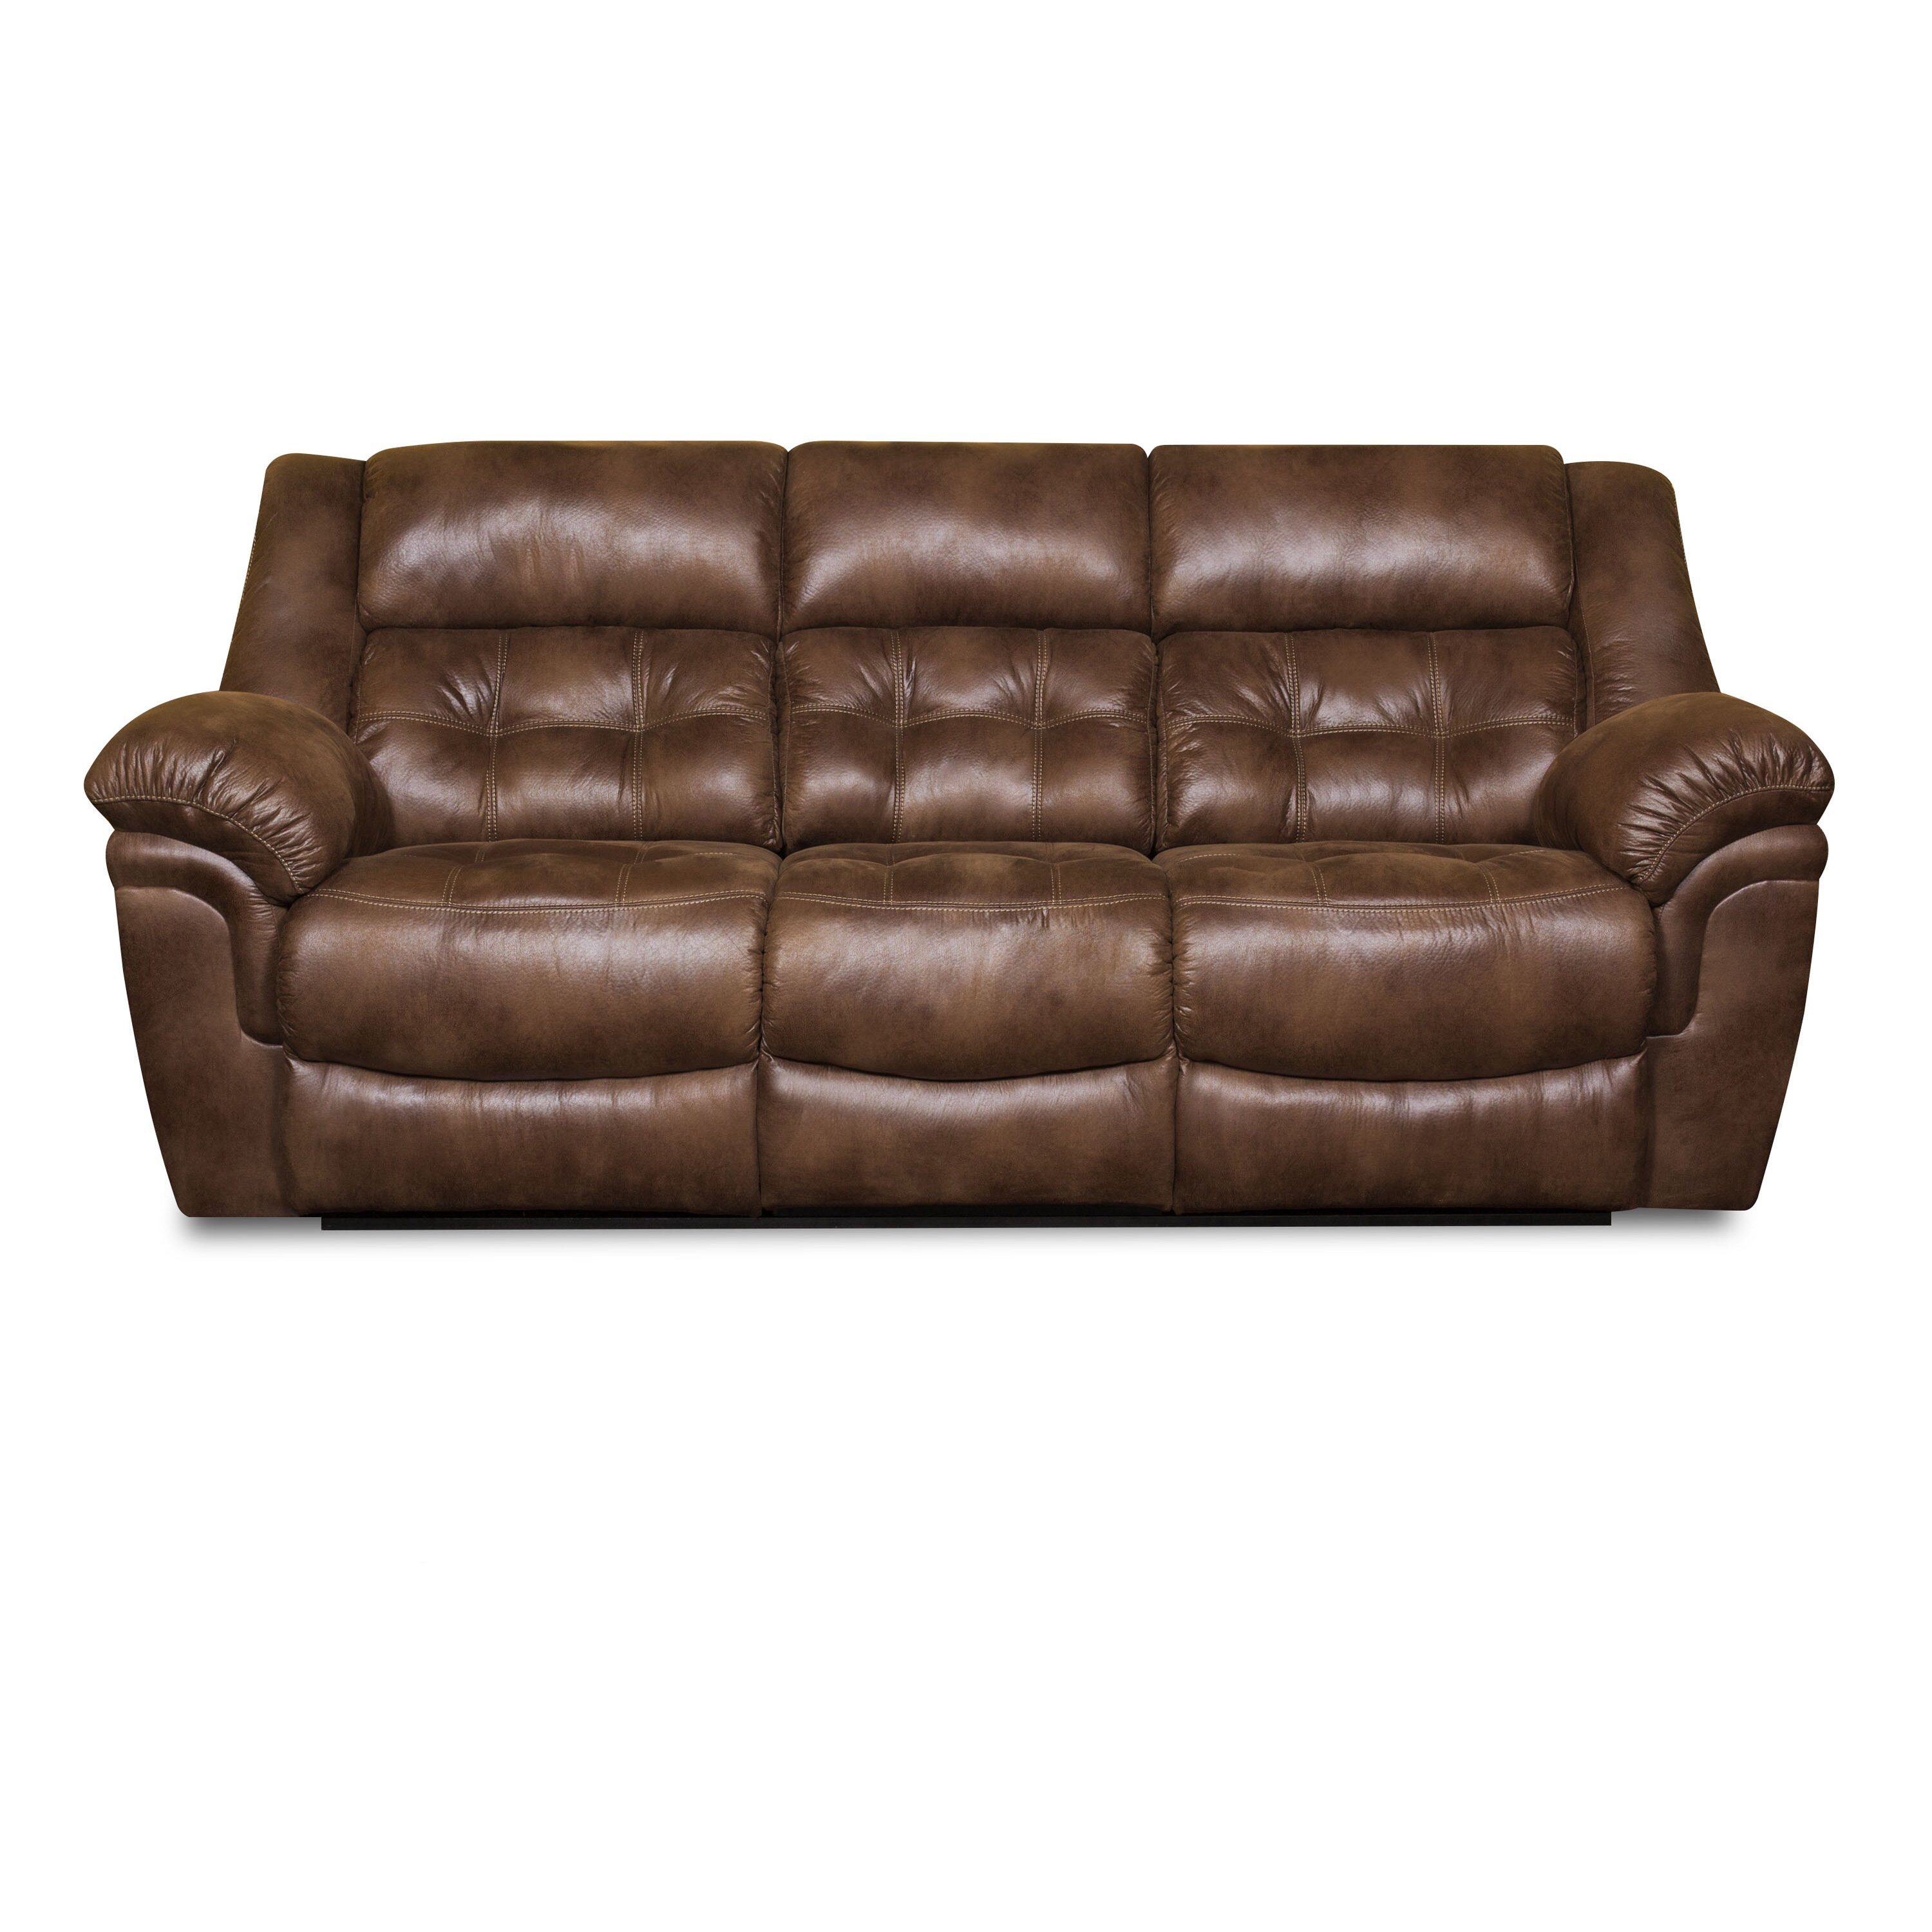 Simmons upholstery wisconsin beautyrest motion sofa for Simmons upholstery sectional sofa